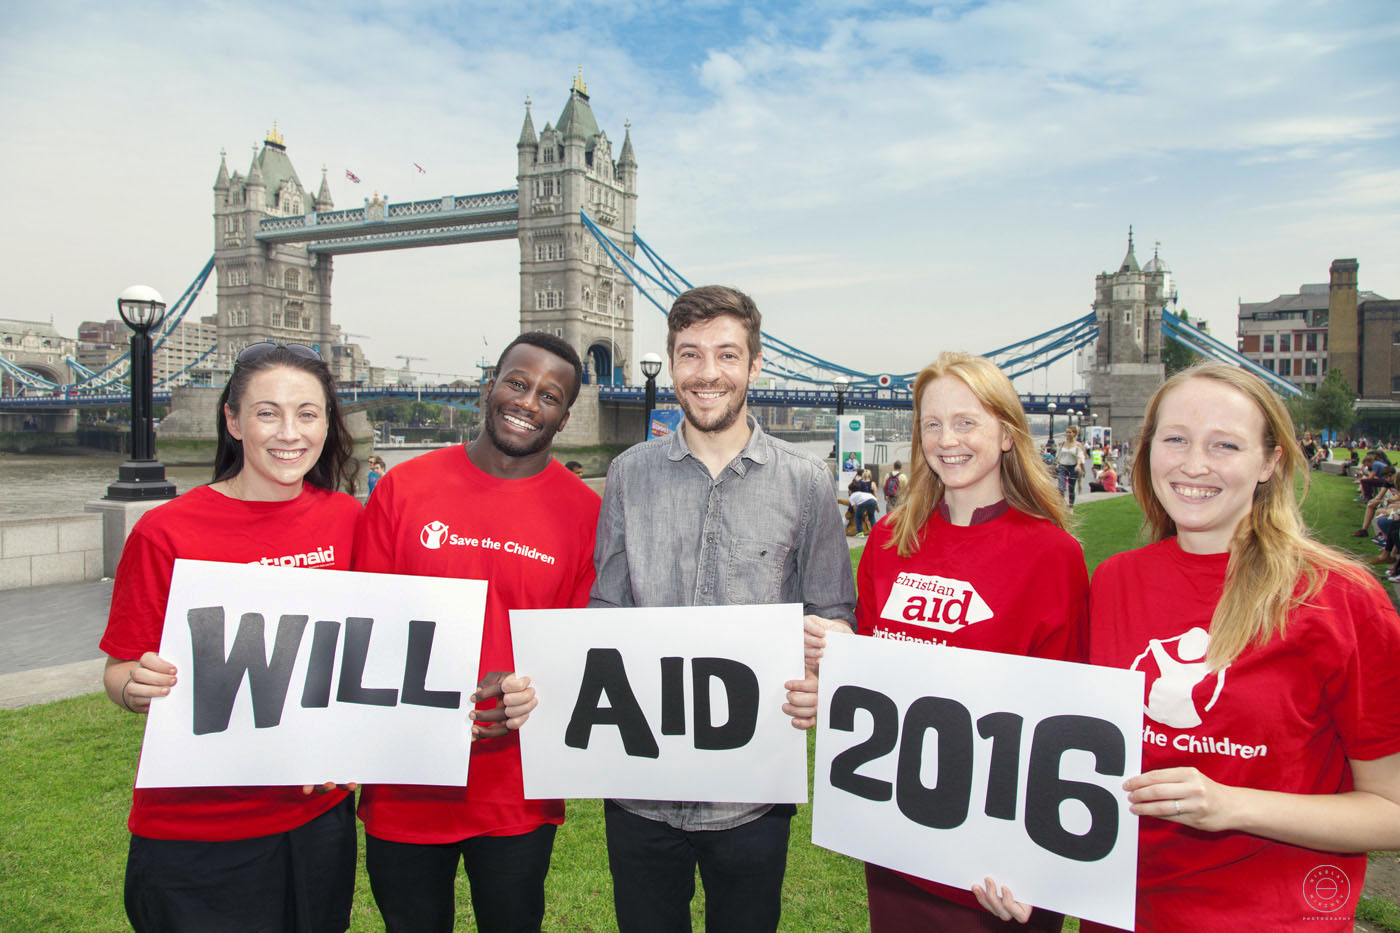 A group of staff holding signs saying Will Aid 2016 in front of Tower Bridge - London.